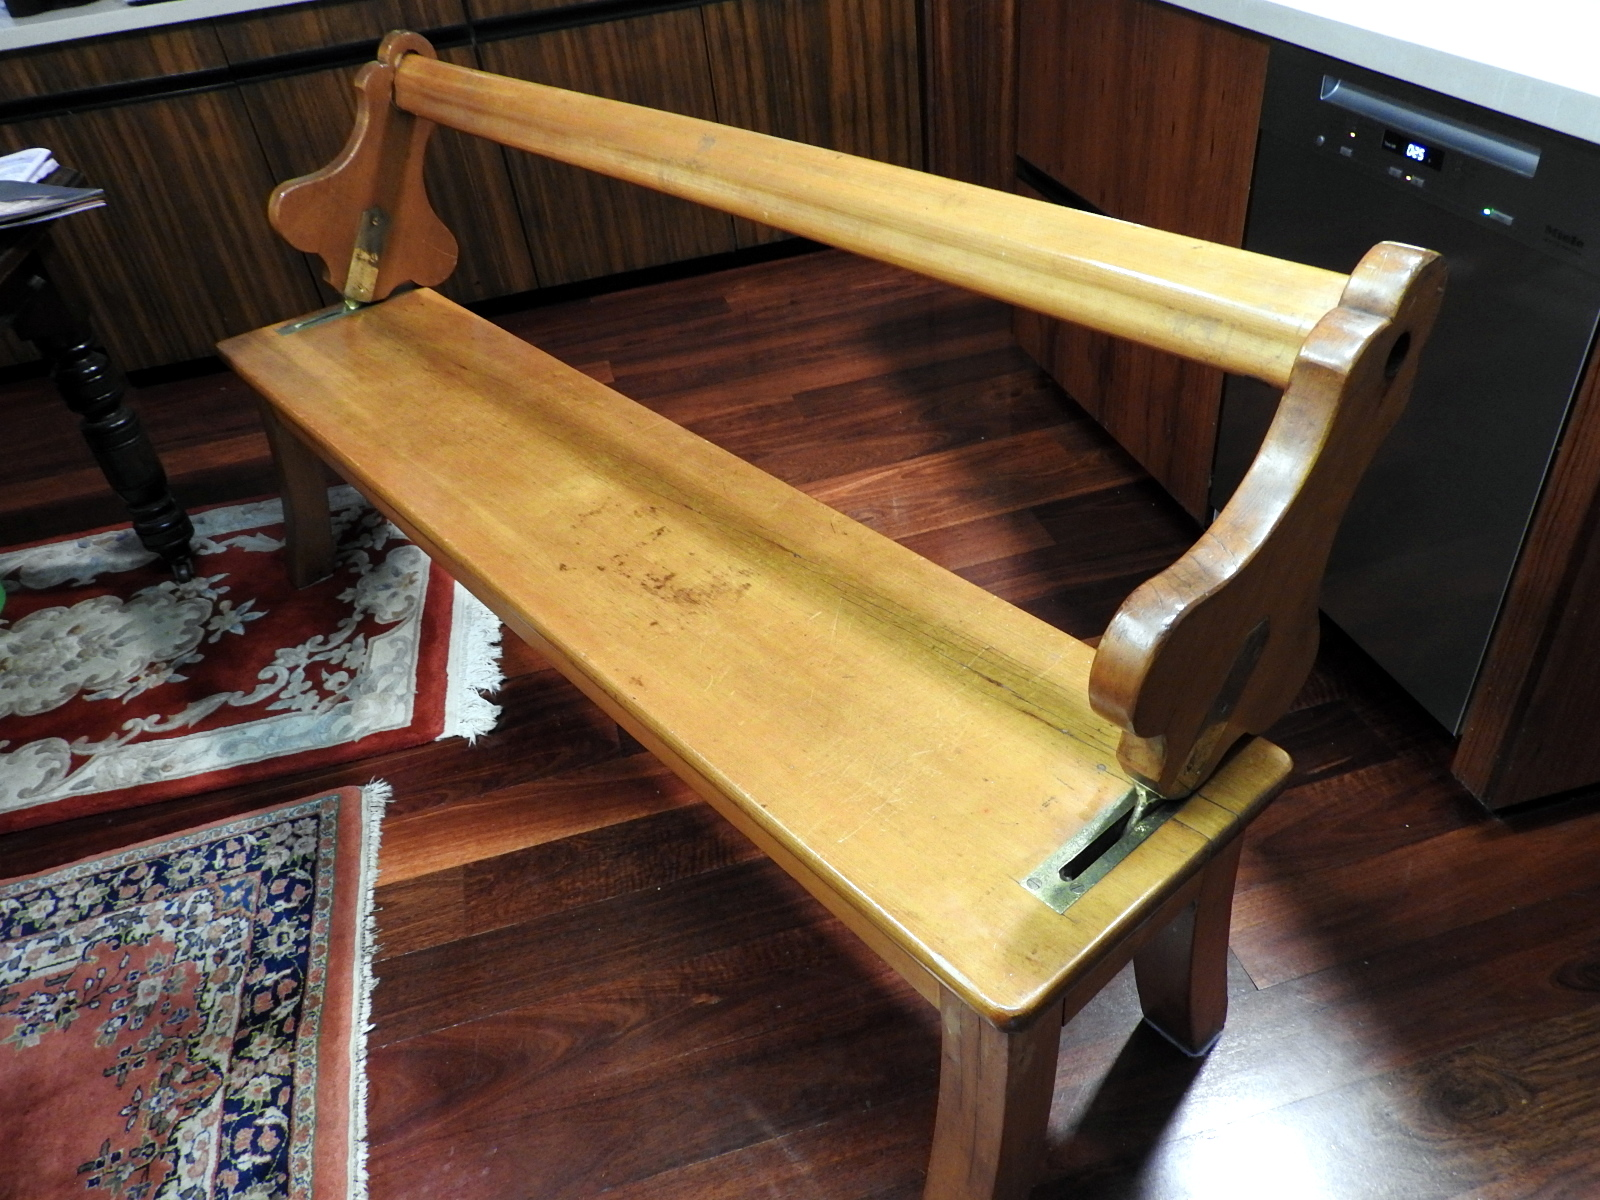 Old Railway/Ferry benches, reversible, made in Parramatta 1899